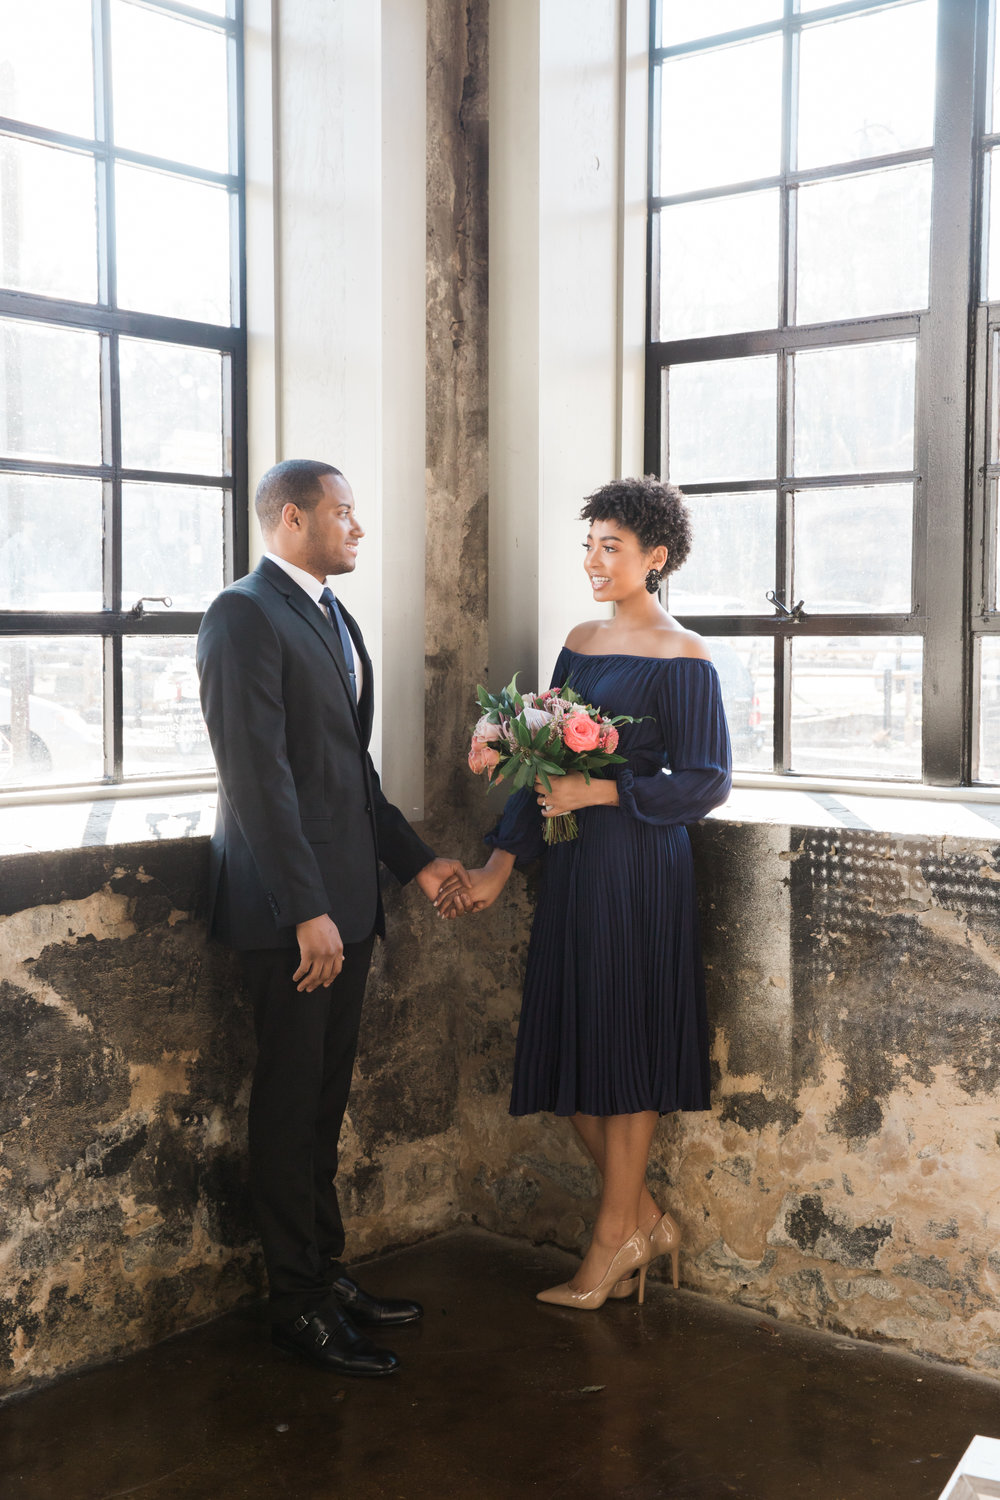 Natural Hair Black Bride in Baltimore Main Street Ballroom Engagement Session by Megapixels Media Photography-10.jpg